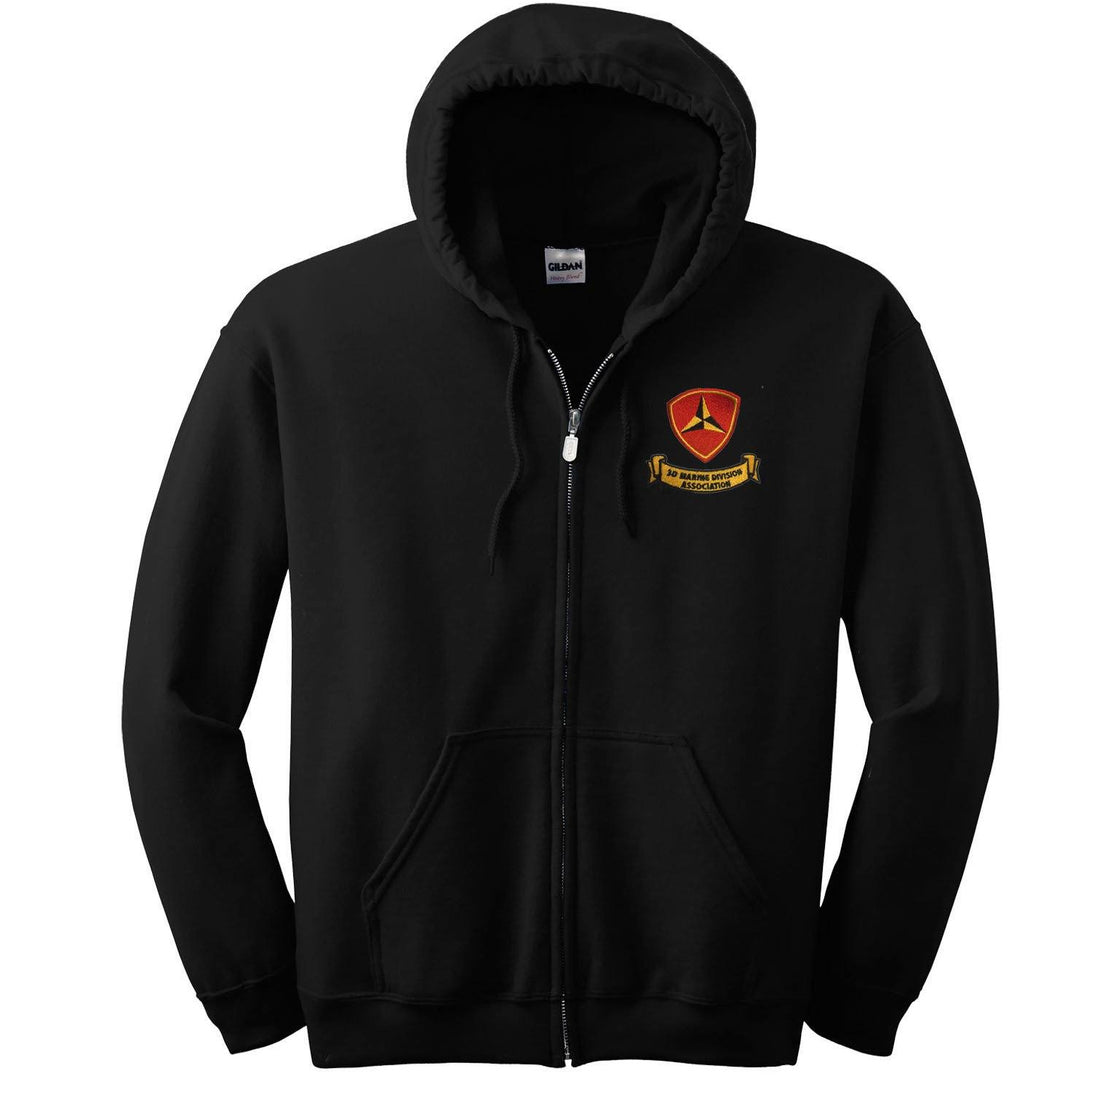 3rd Mar Div Association Heavy Blend™ Embroidered Full-Zip Hoodie